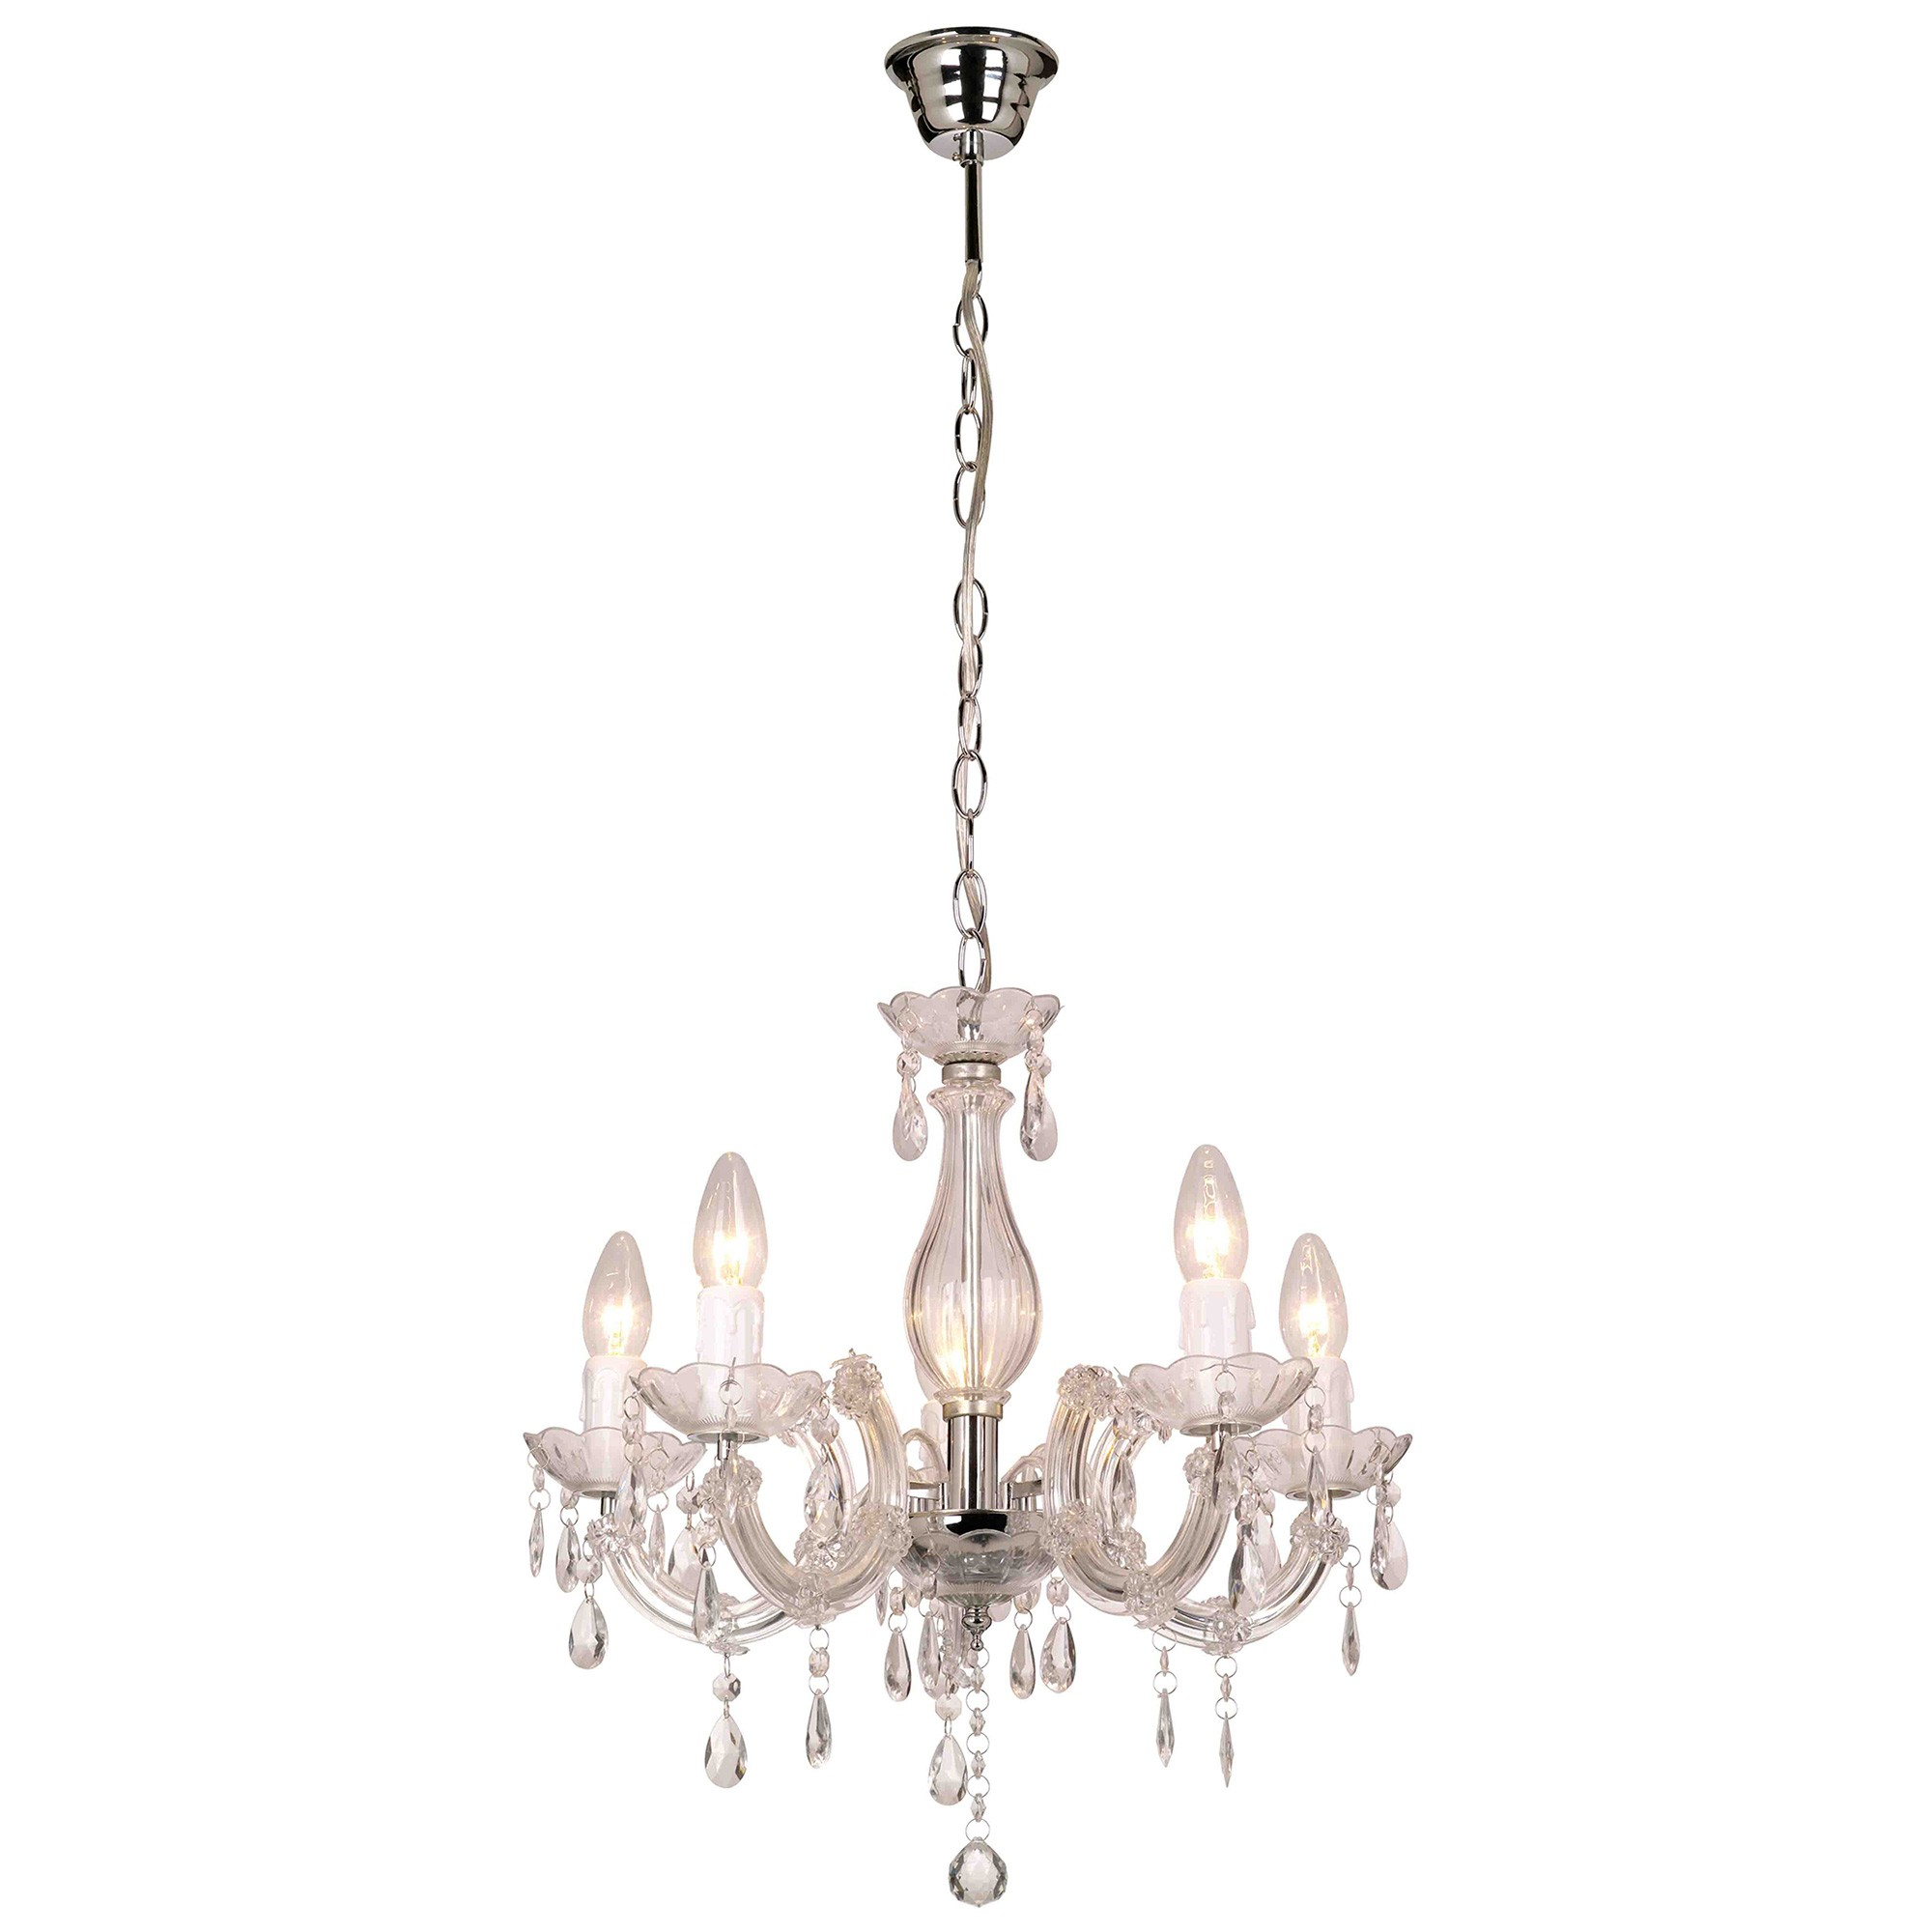 La Spezia Chandelier, 5 Arm, Clear